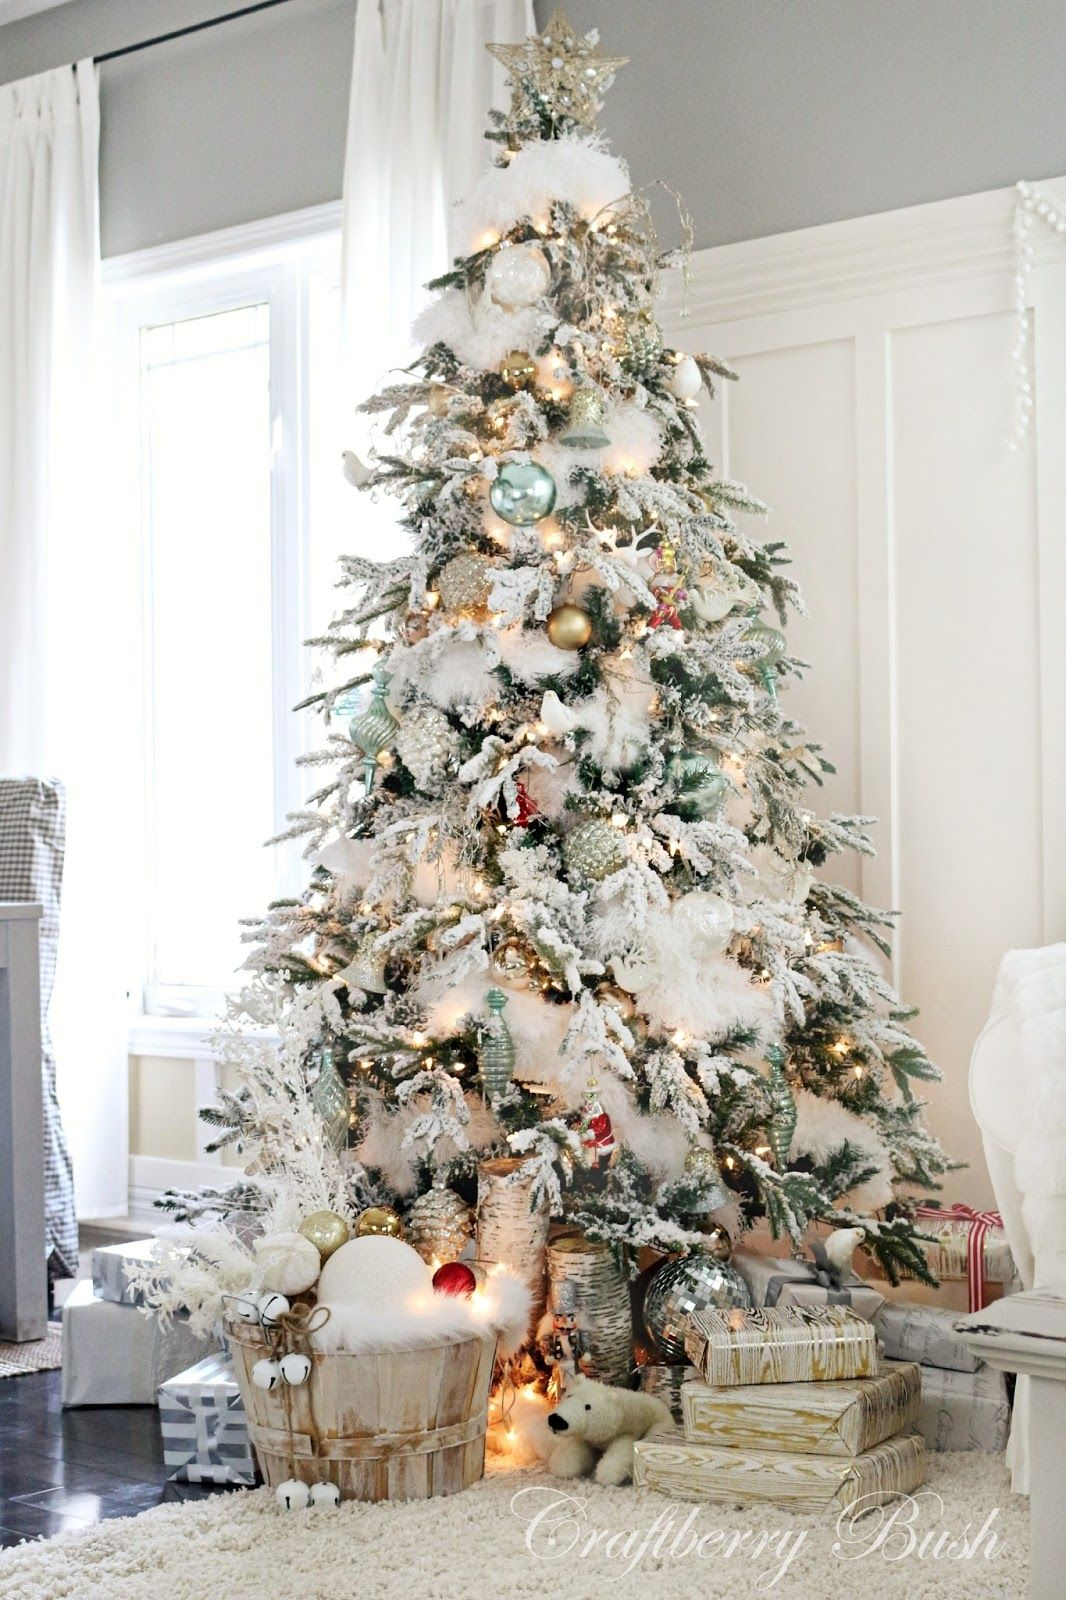 Pin by Patricia Weaver on Christmas | Pinterest | Snowy christmas ...